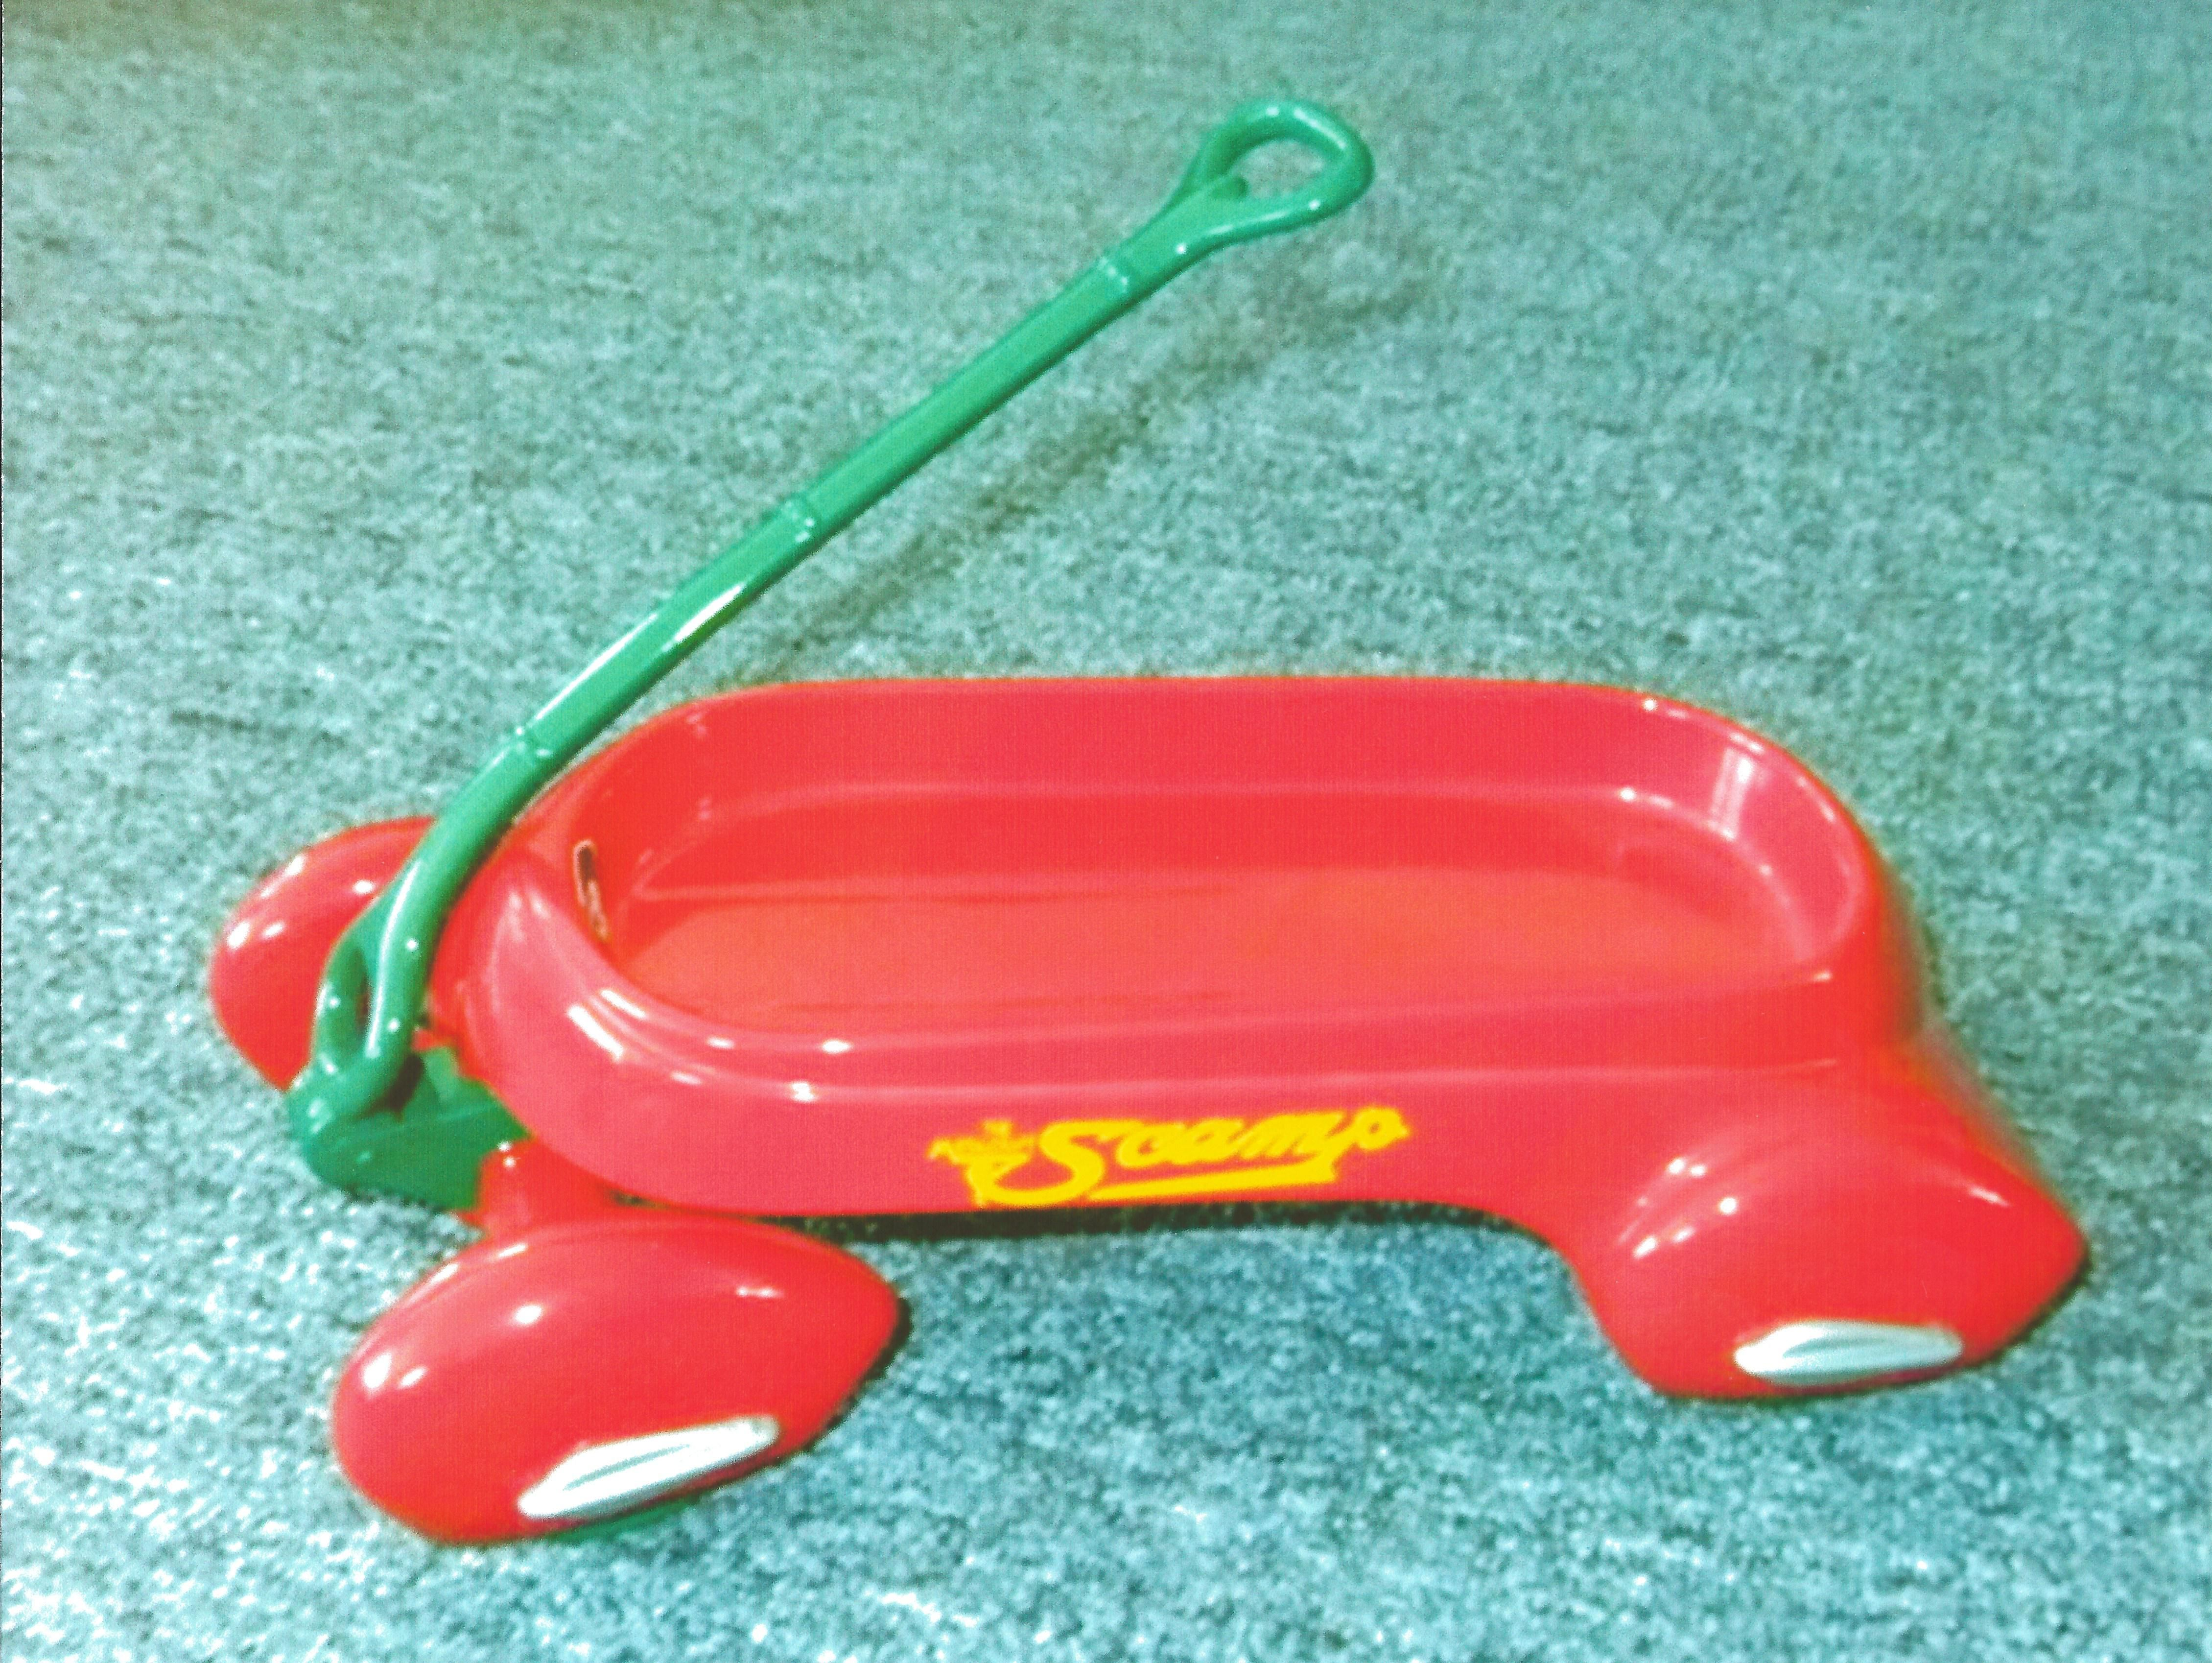 Claasic vintage toys vintage toys second shout out http www - Explore Vintage Toys Coaster And More 1933 Restored Scamp Coaster Wagon Metalcraft Corporation